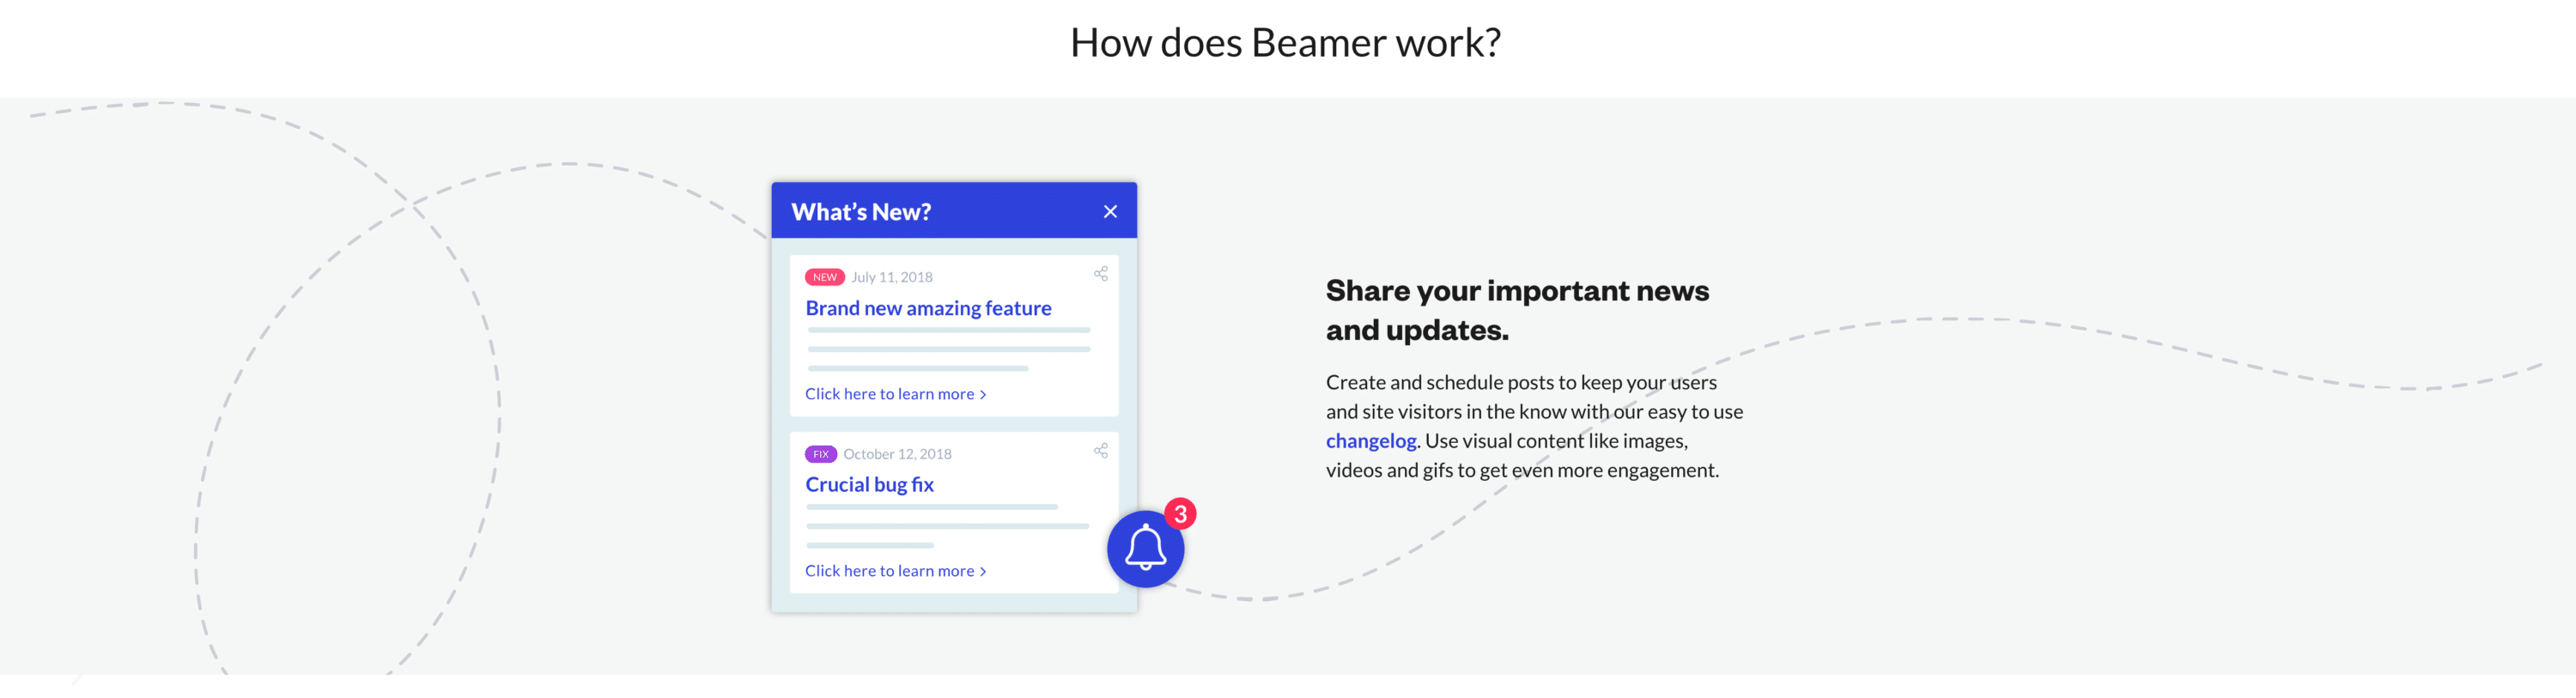 how-does-beamer-work